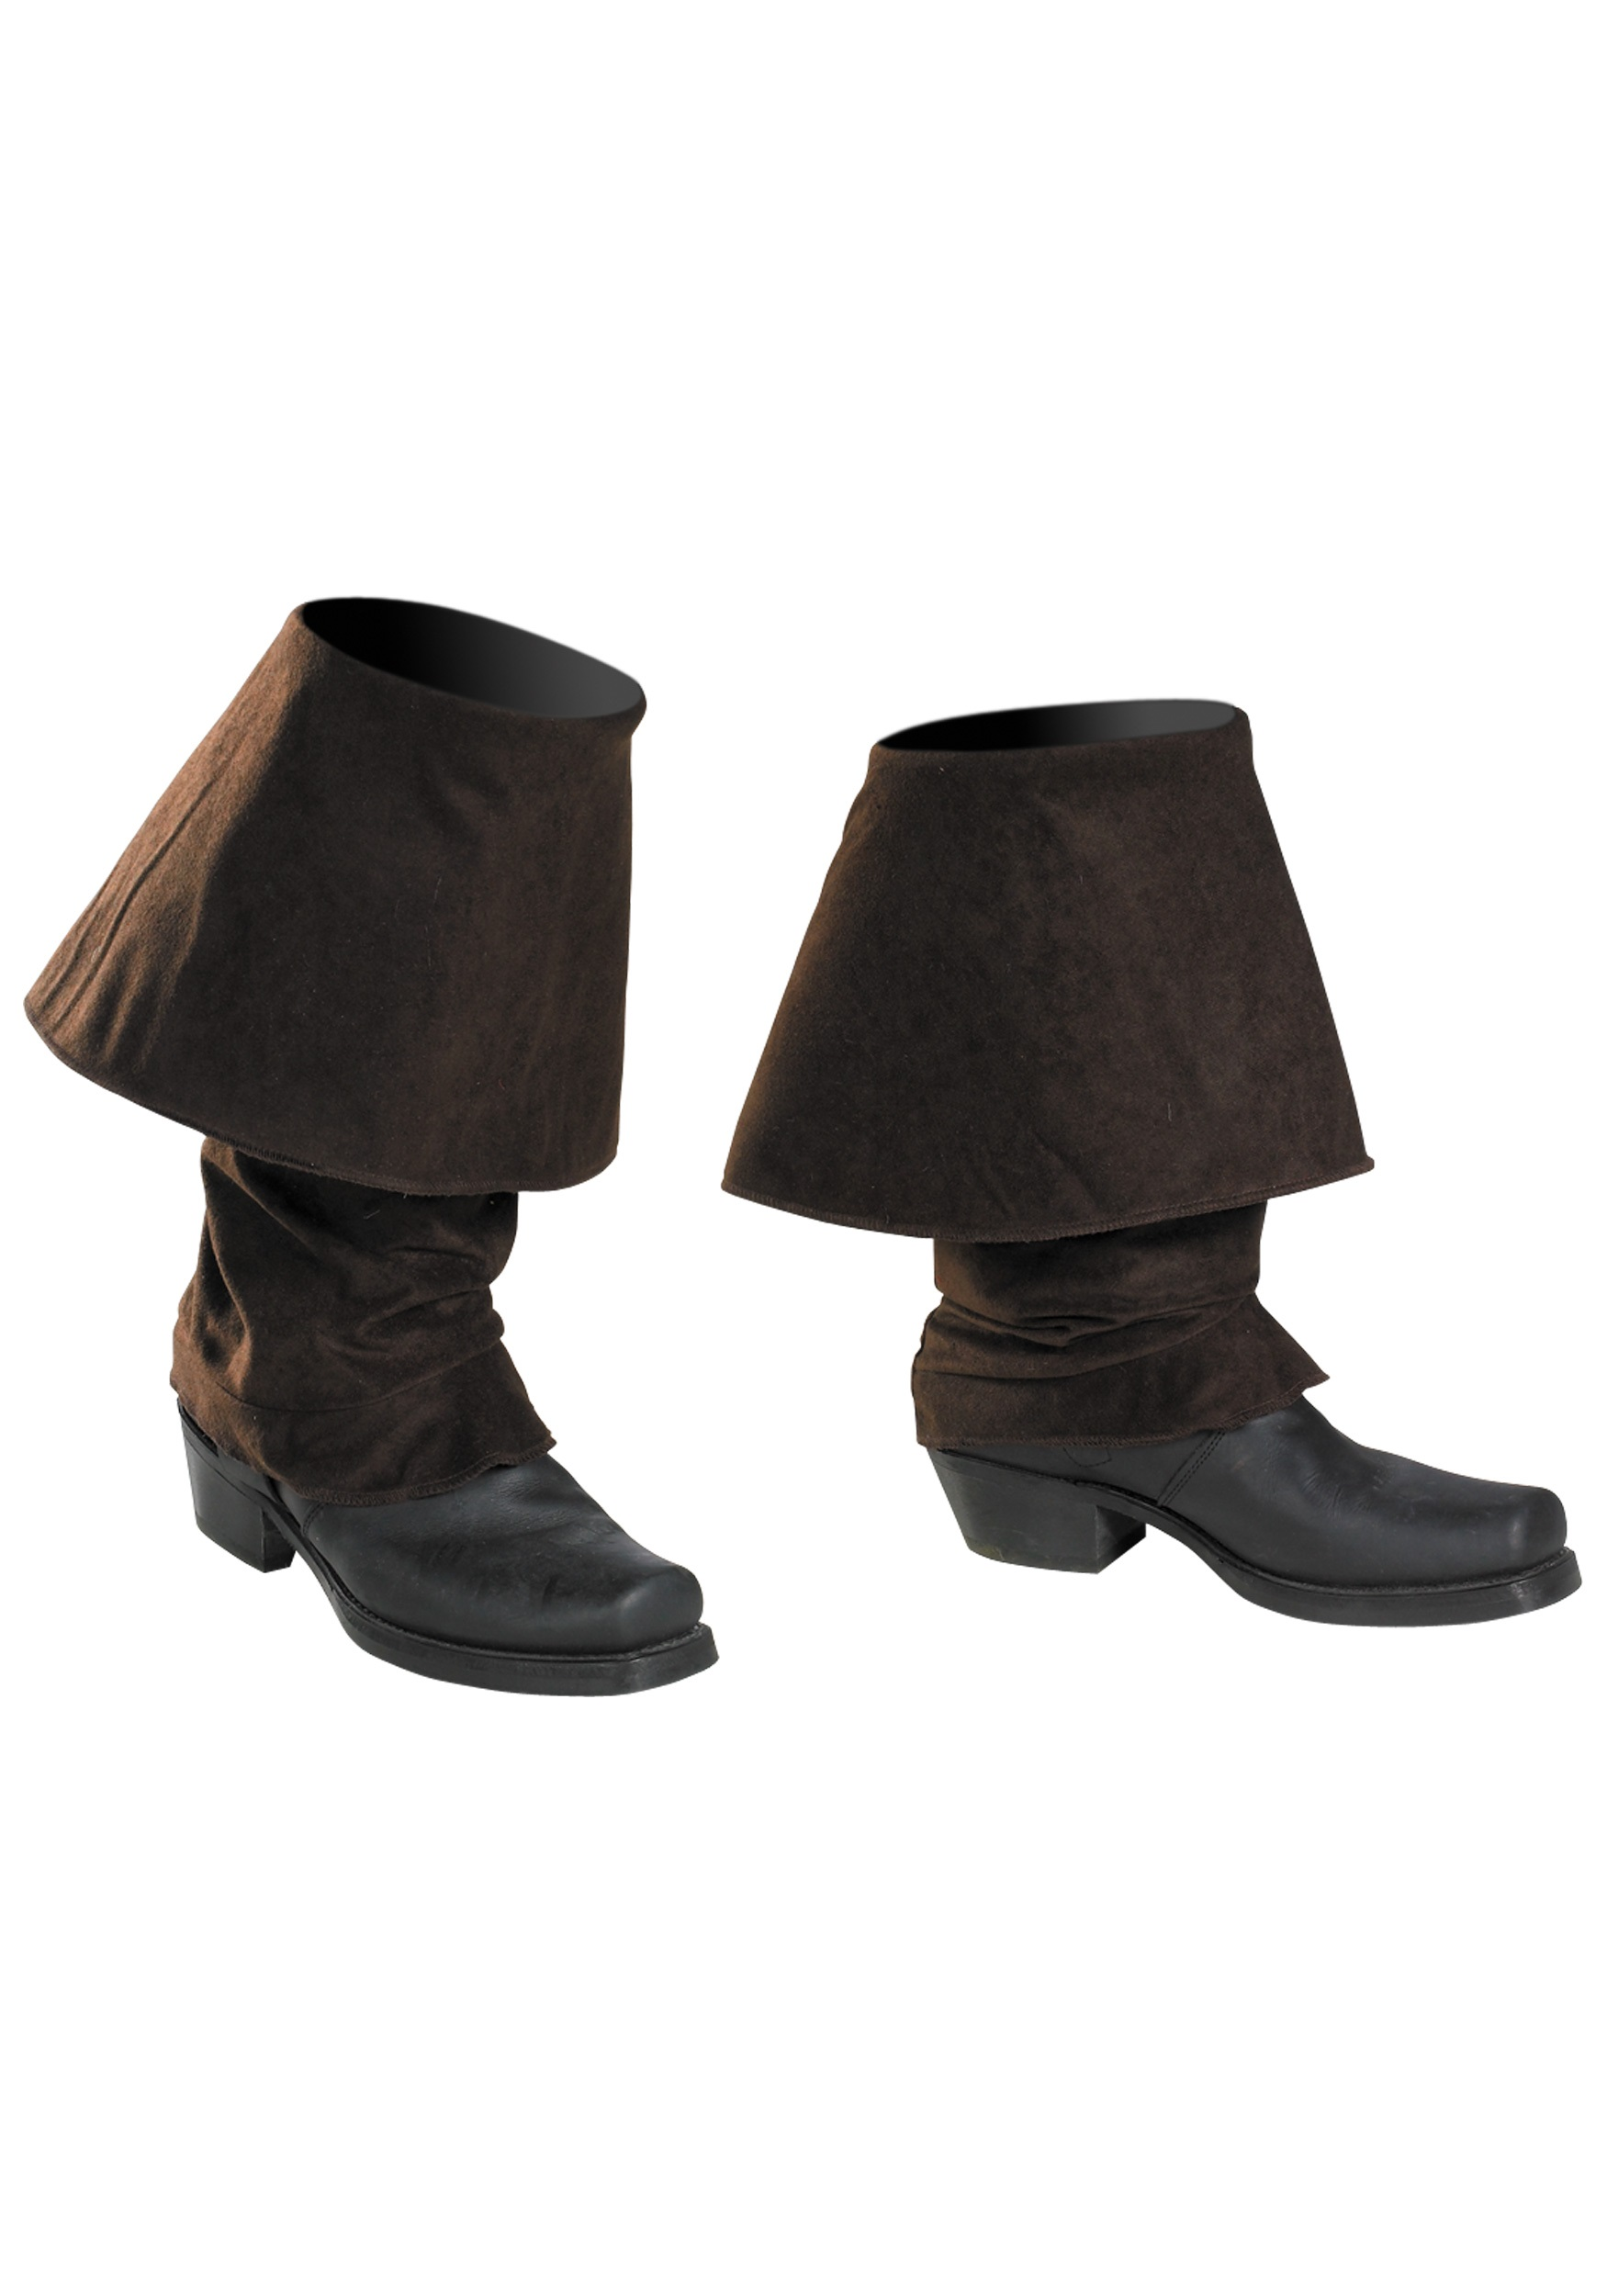 Jack Sparrow Adult Boot Covers